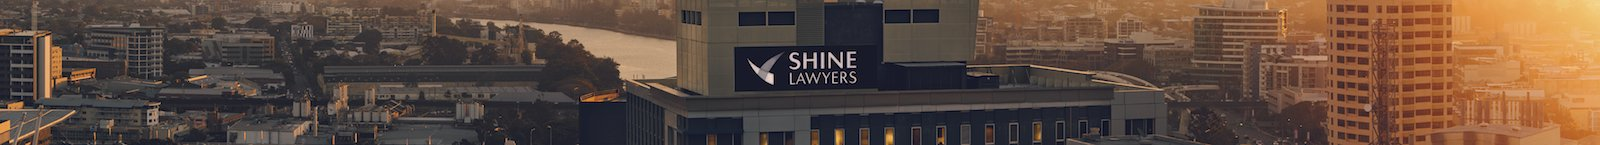 Compensation at Shine Lawyers | Shine Lawyers